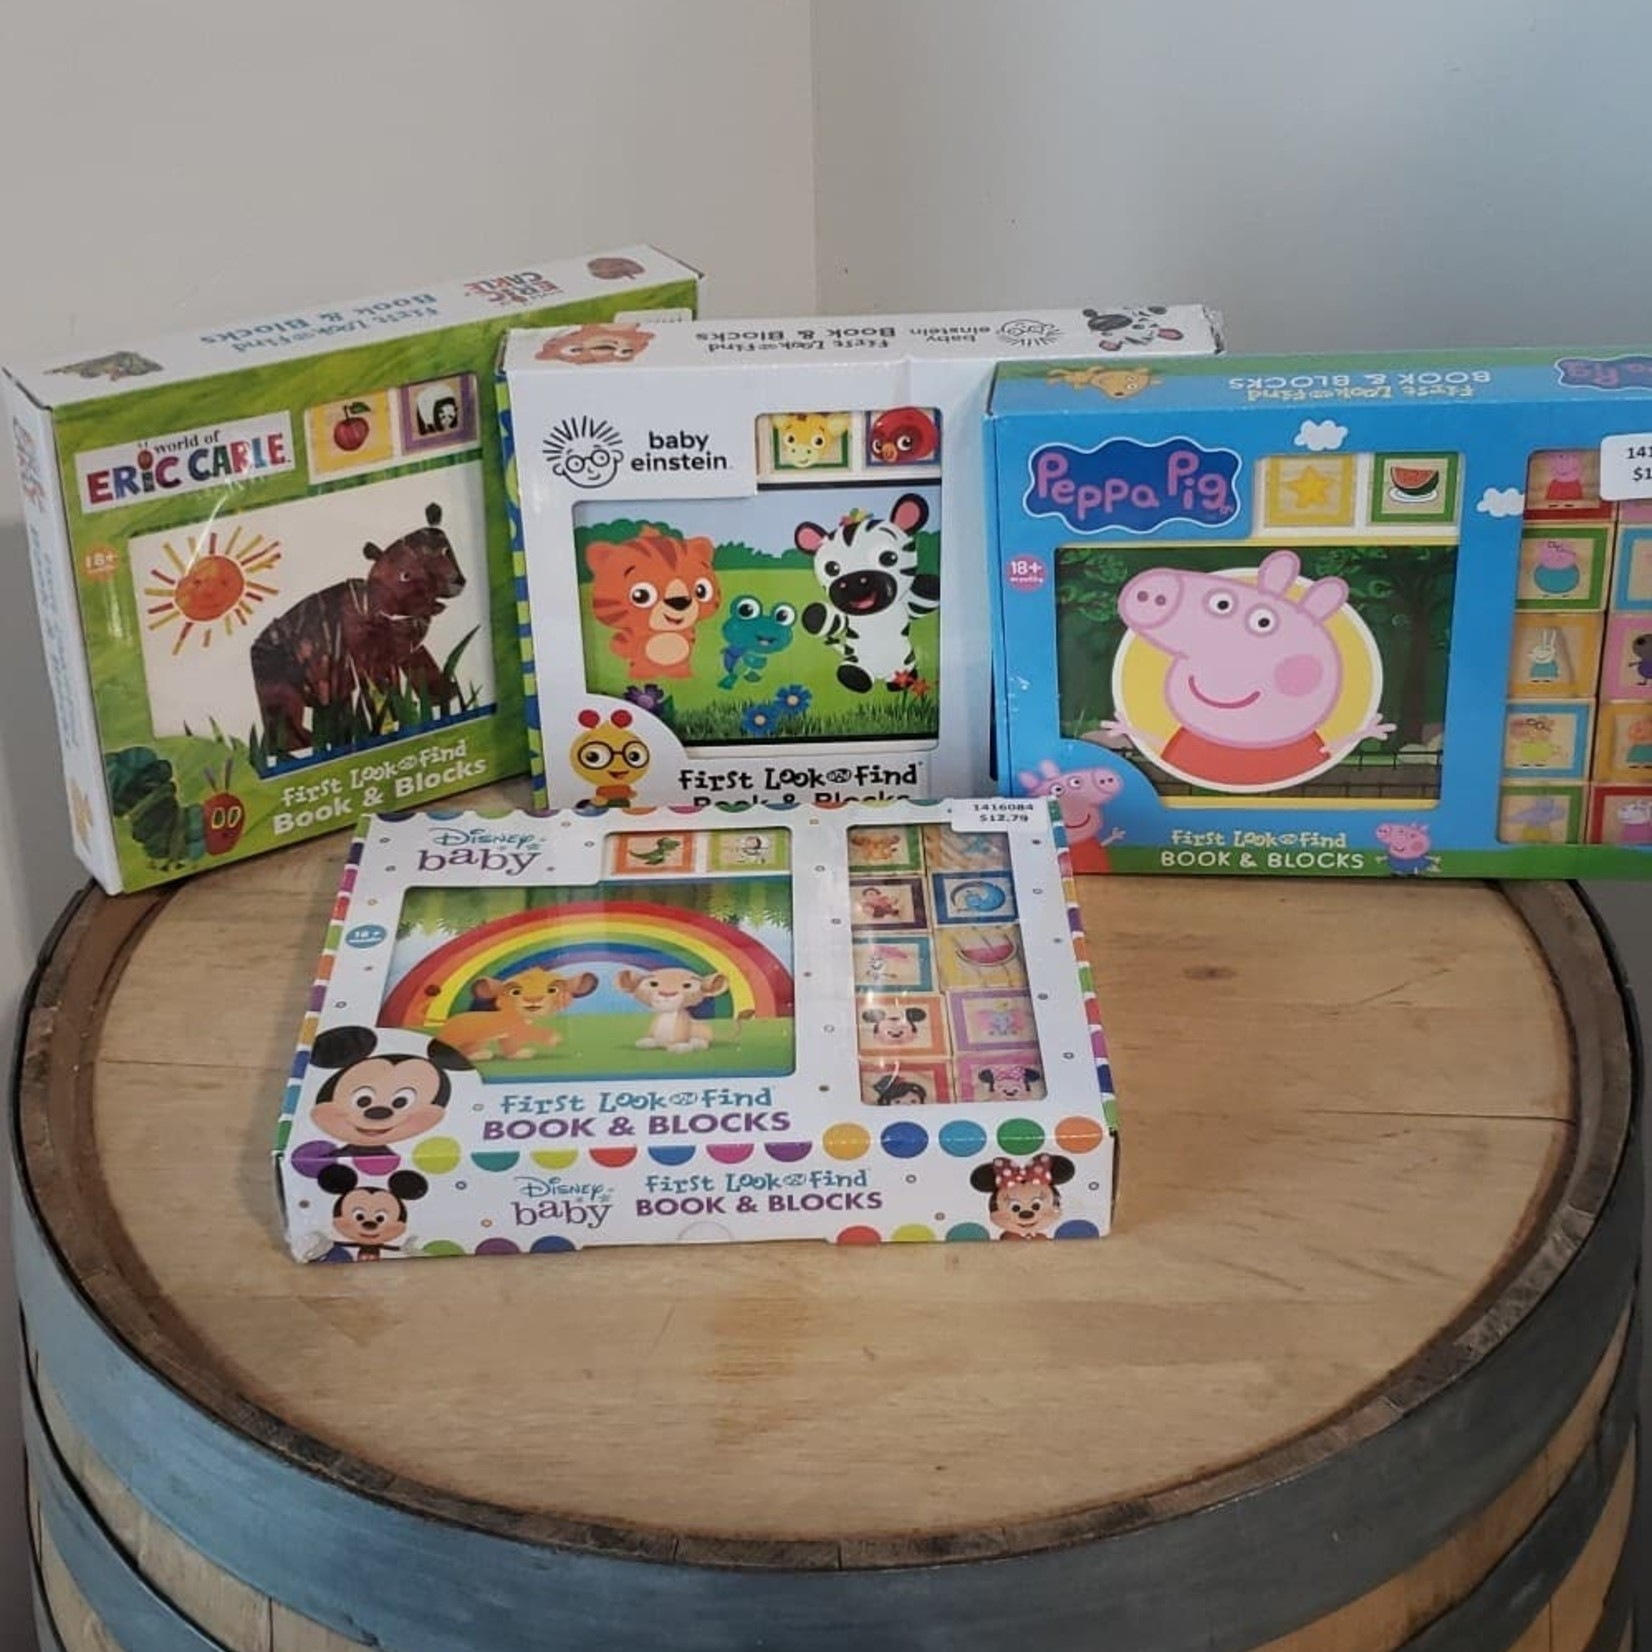 First Look and Find Book & Blocks